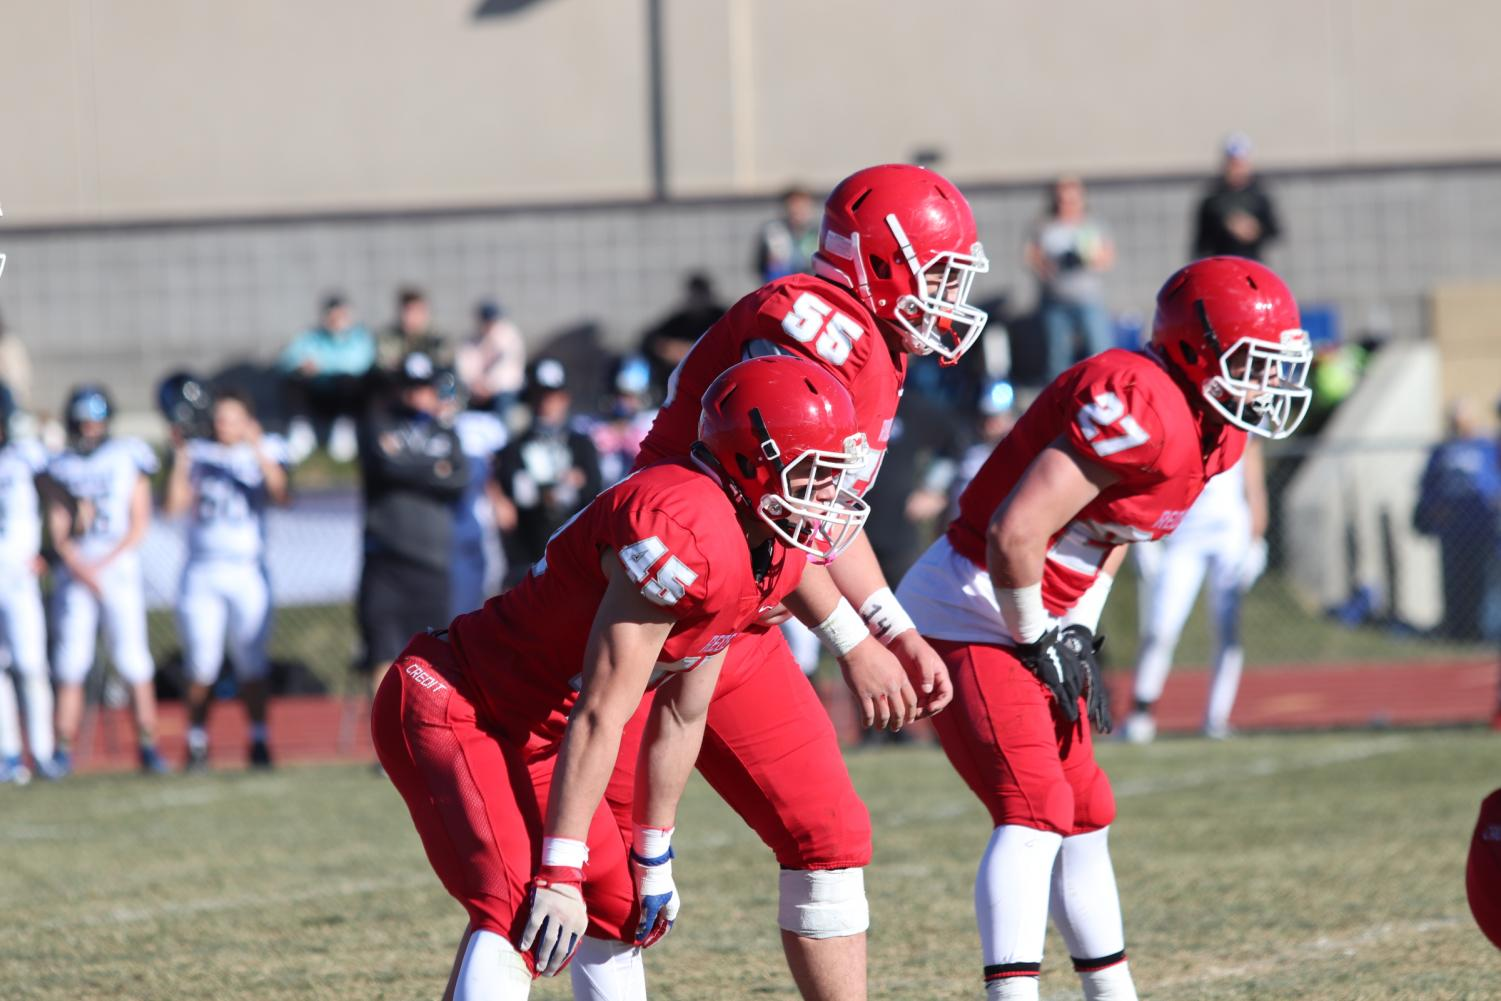 Reds football heading to 2A State Championships